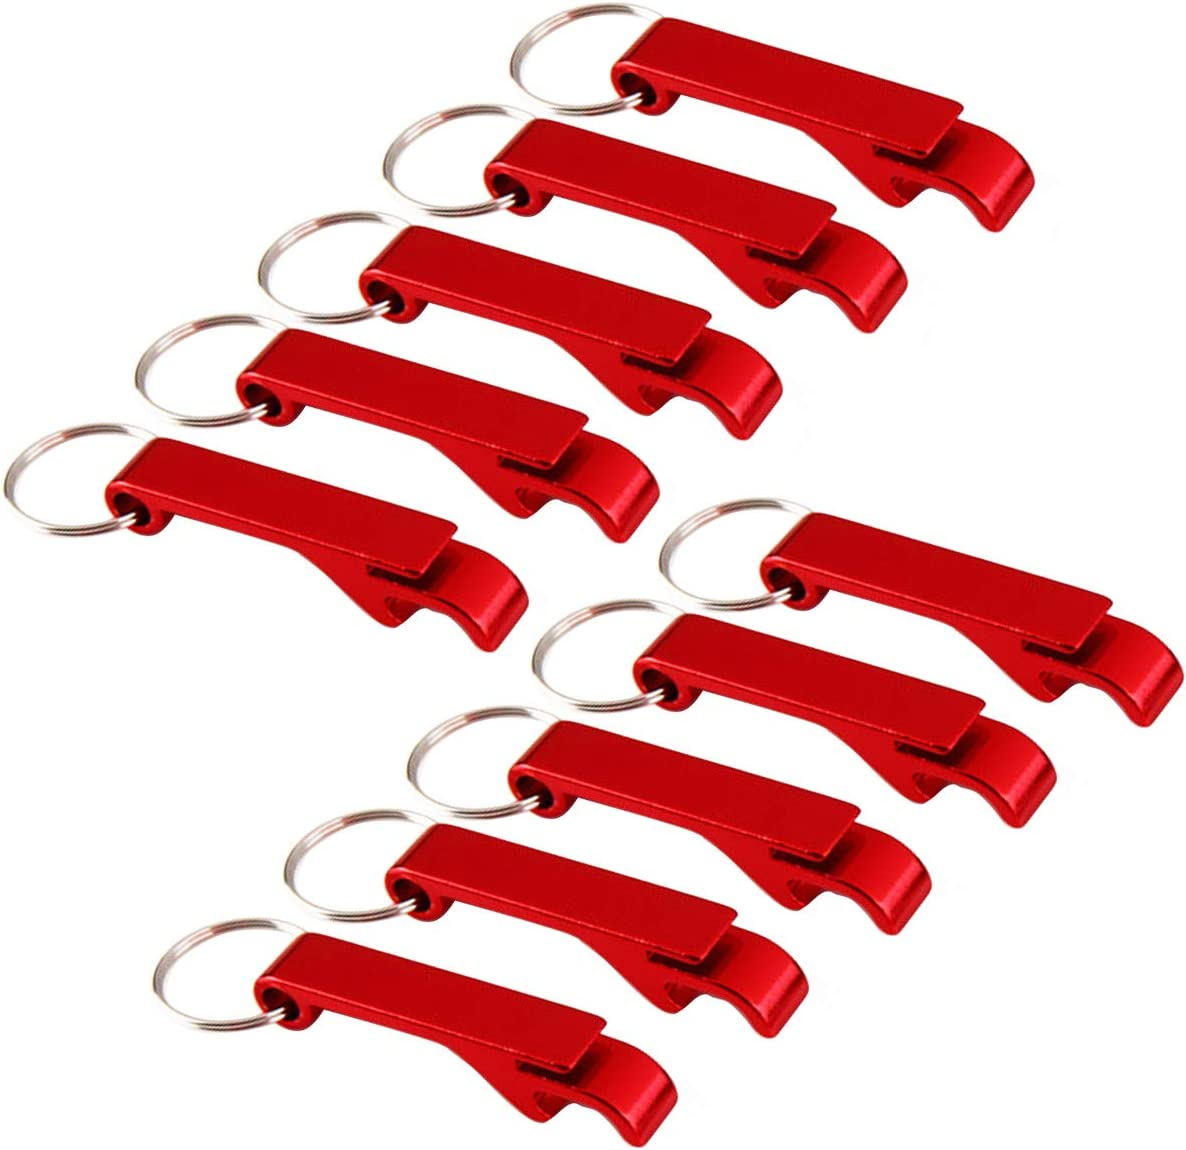 IDOXE 10pcs Aluminum Black Bottle Opener Keychain Beer Pocket Bulk for Men Women Helper for Wedding Kitchen Gift (Red 10pcs)